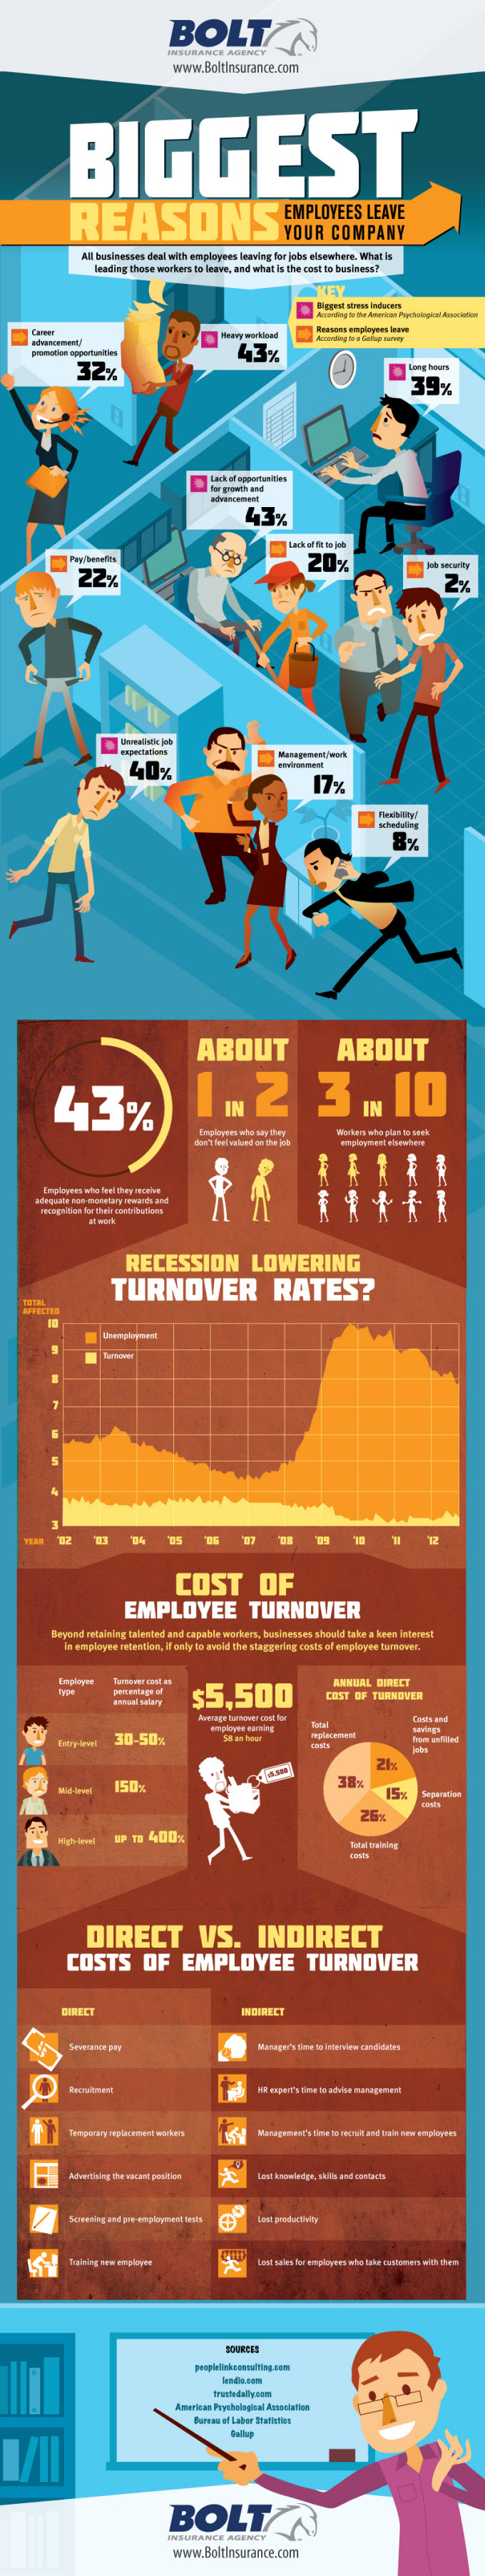 Reasons Why Employees Leave Your Company Infographic By Bolt